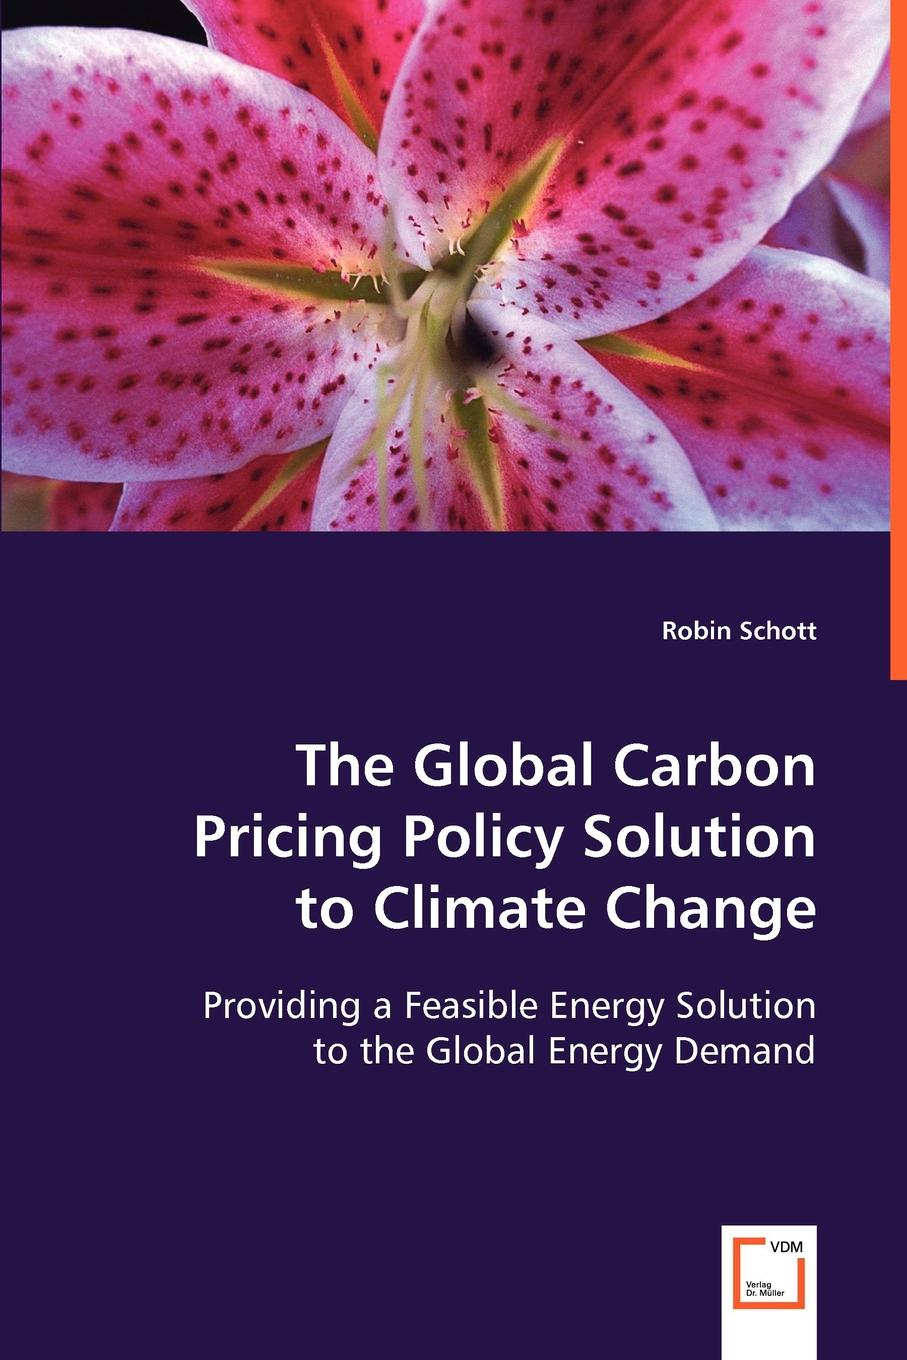 Robin Schott The Global Carbon Pricing Policy Solution to Climate Change john carroll j acid gas injection and carbon dioxide sequestration